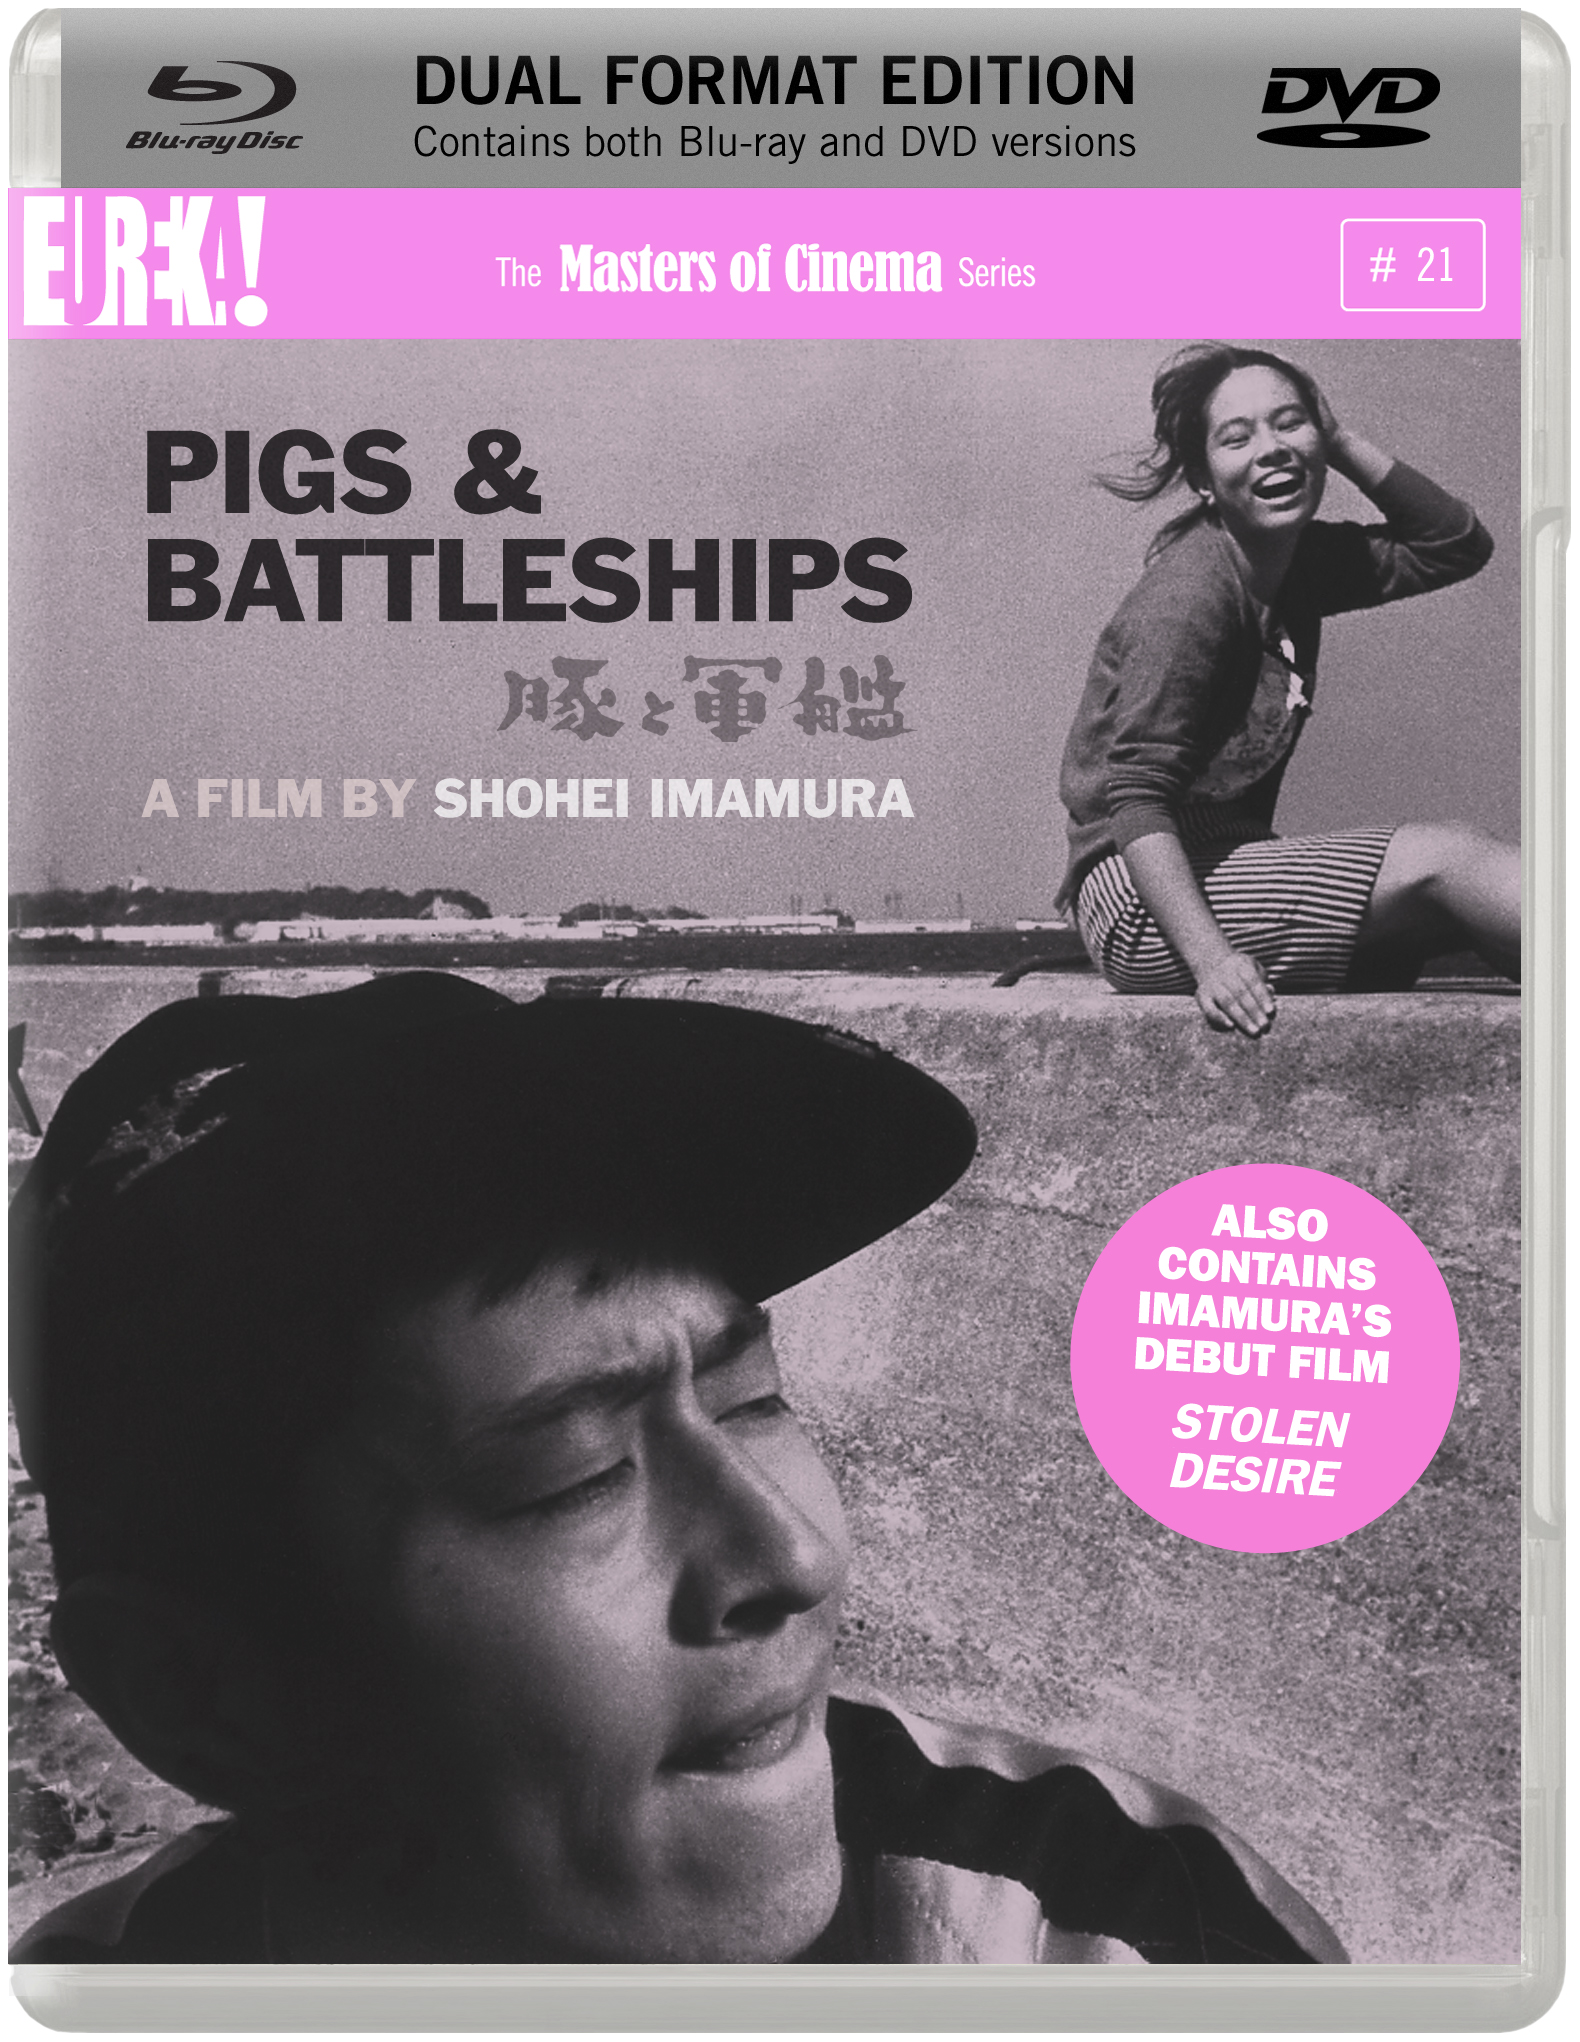 021 PIGS AND BATTLESHIPS DUAL FORMAT 2D packshot 300dpi 70+Ghz (please fold so i dont have to quit smoking. j/k)